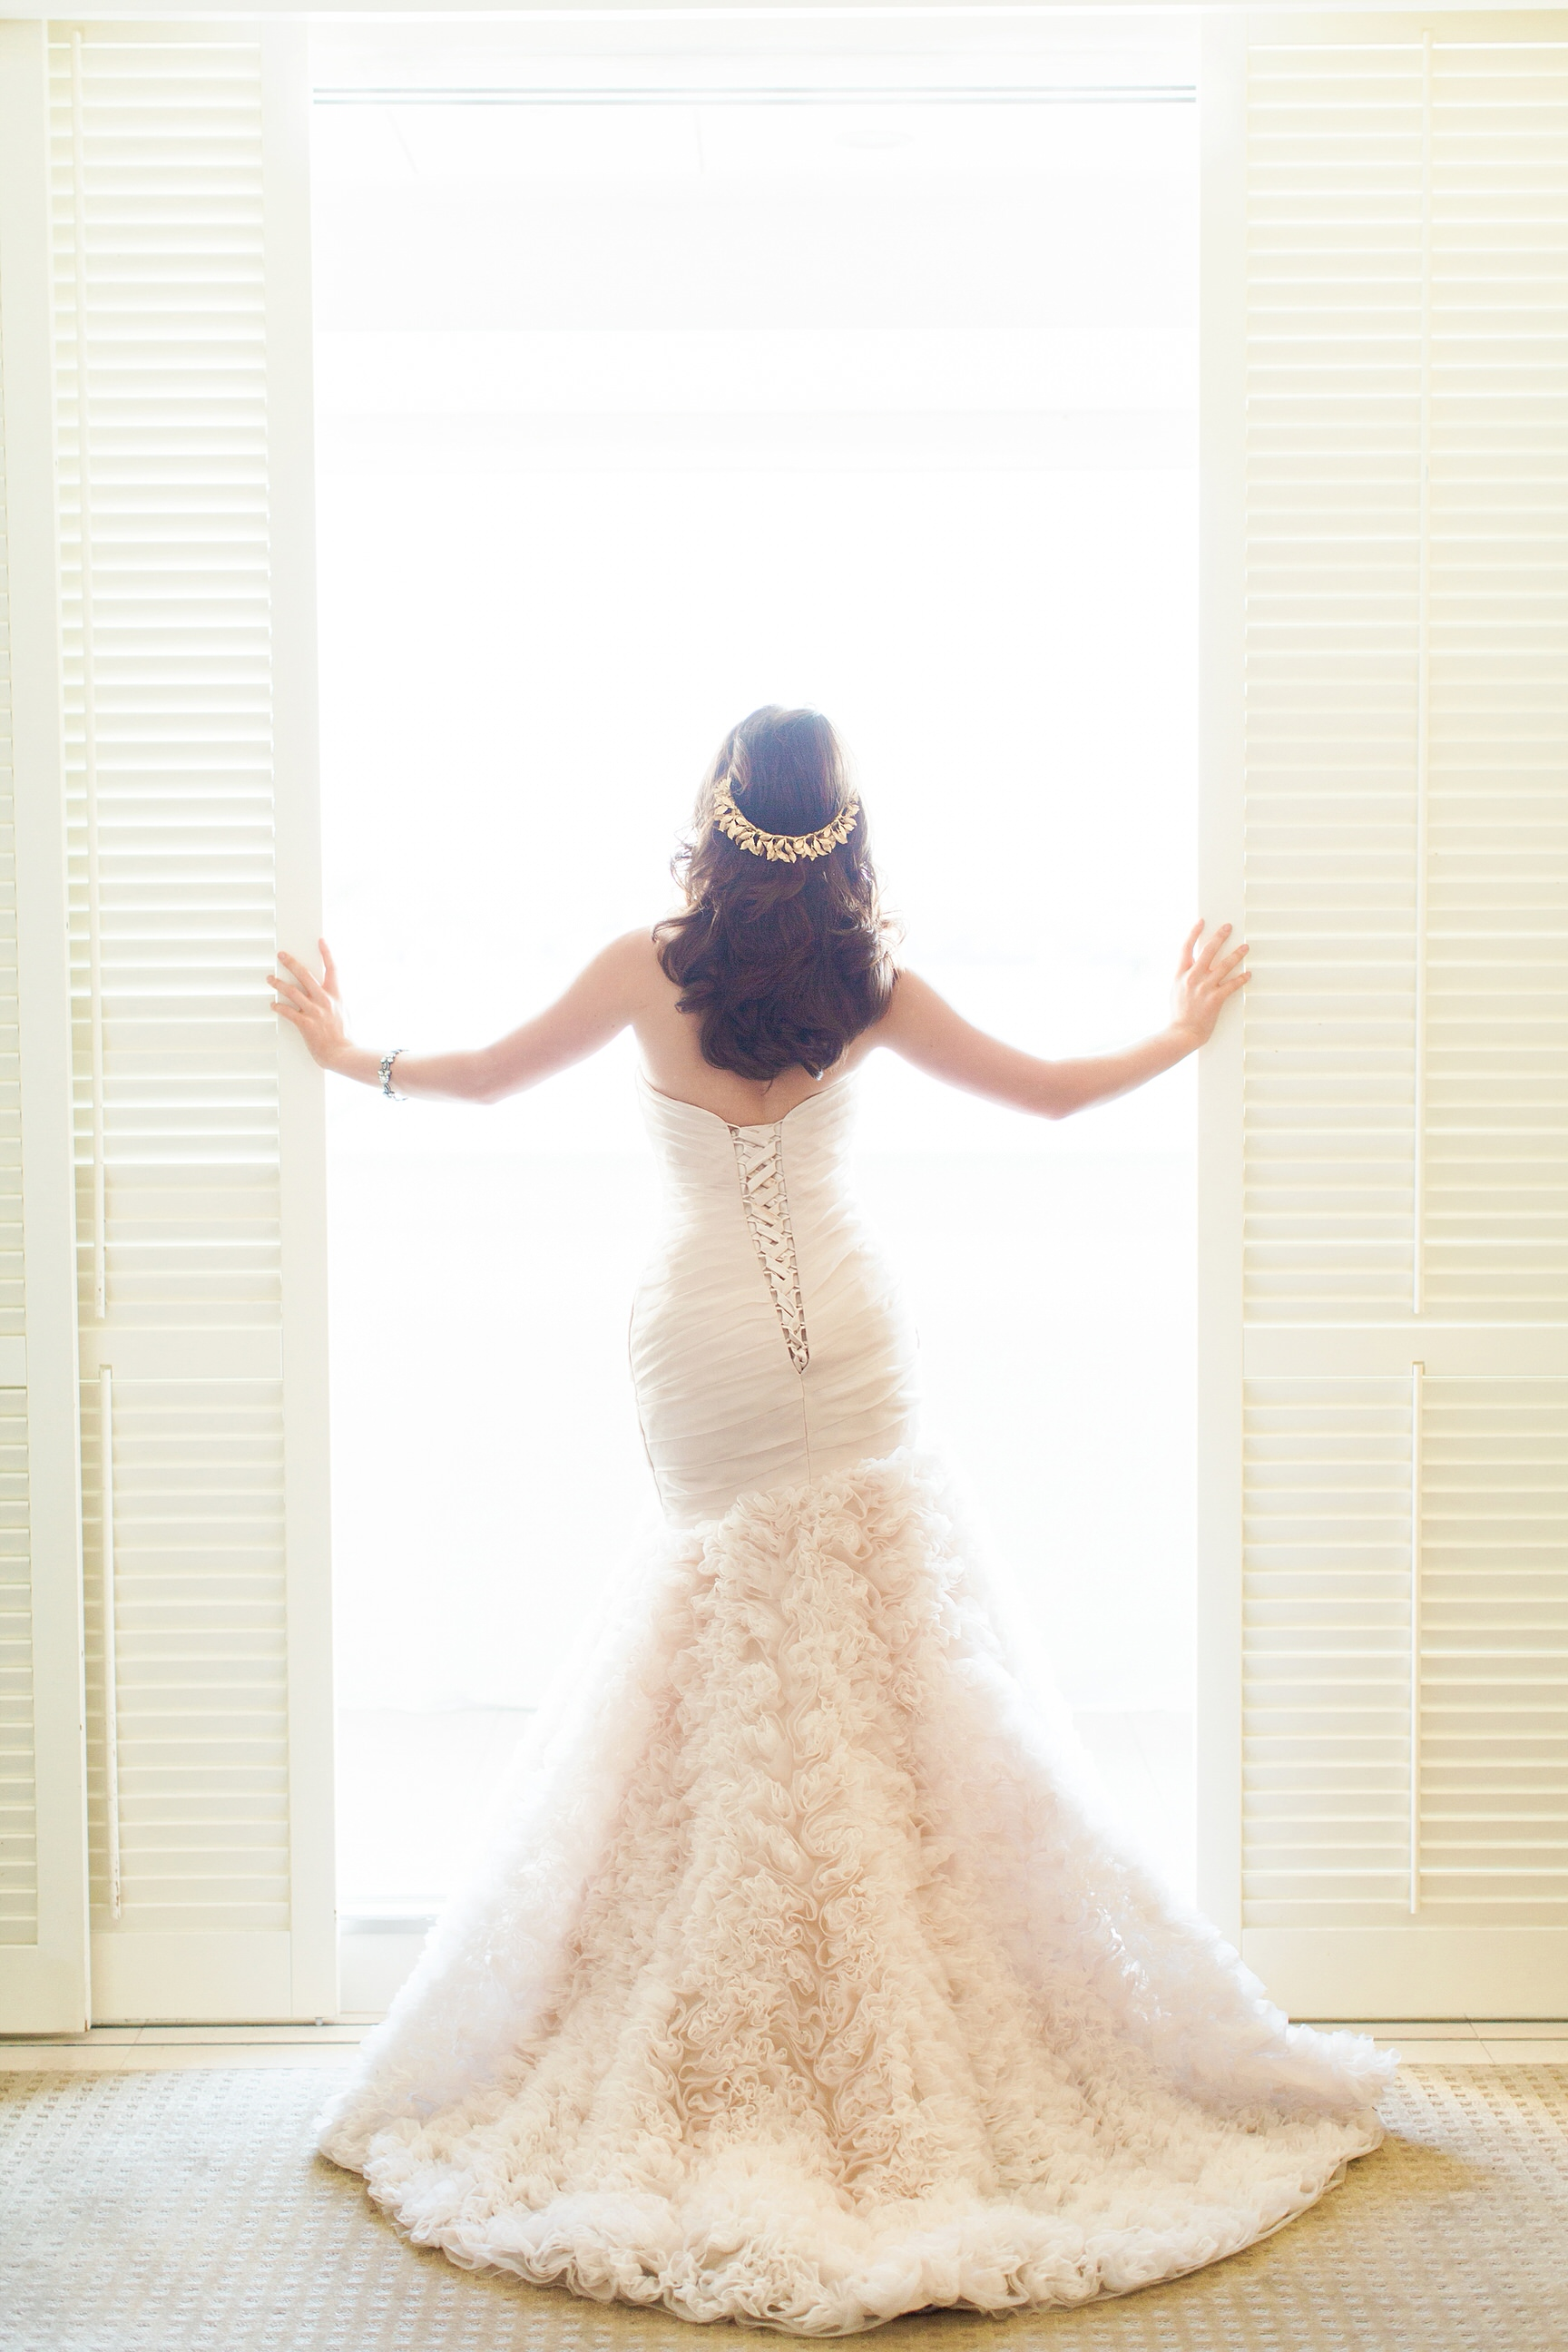 Fine Art Film Boudoir Wedding Photographer Sydney_0015.jpg